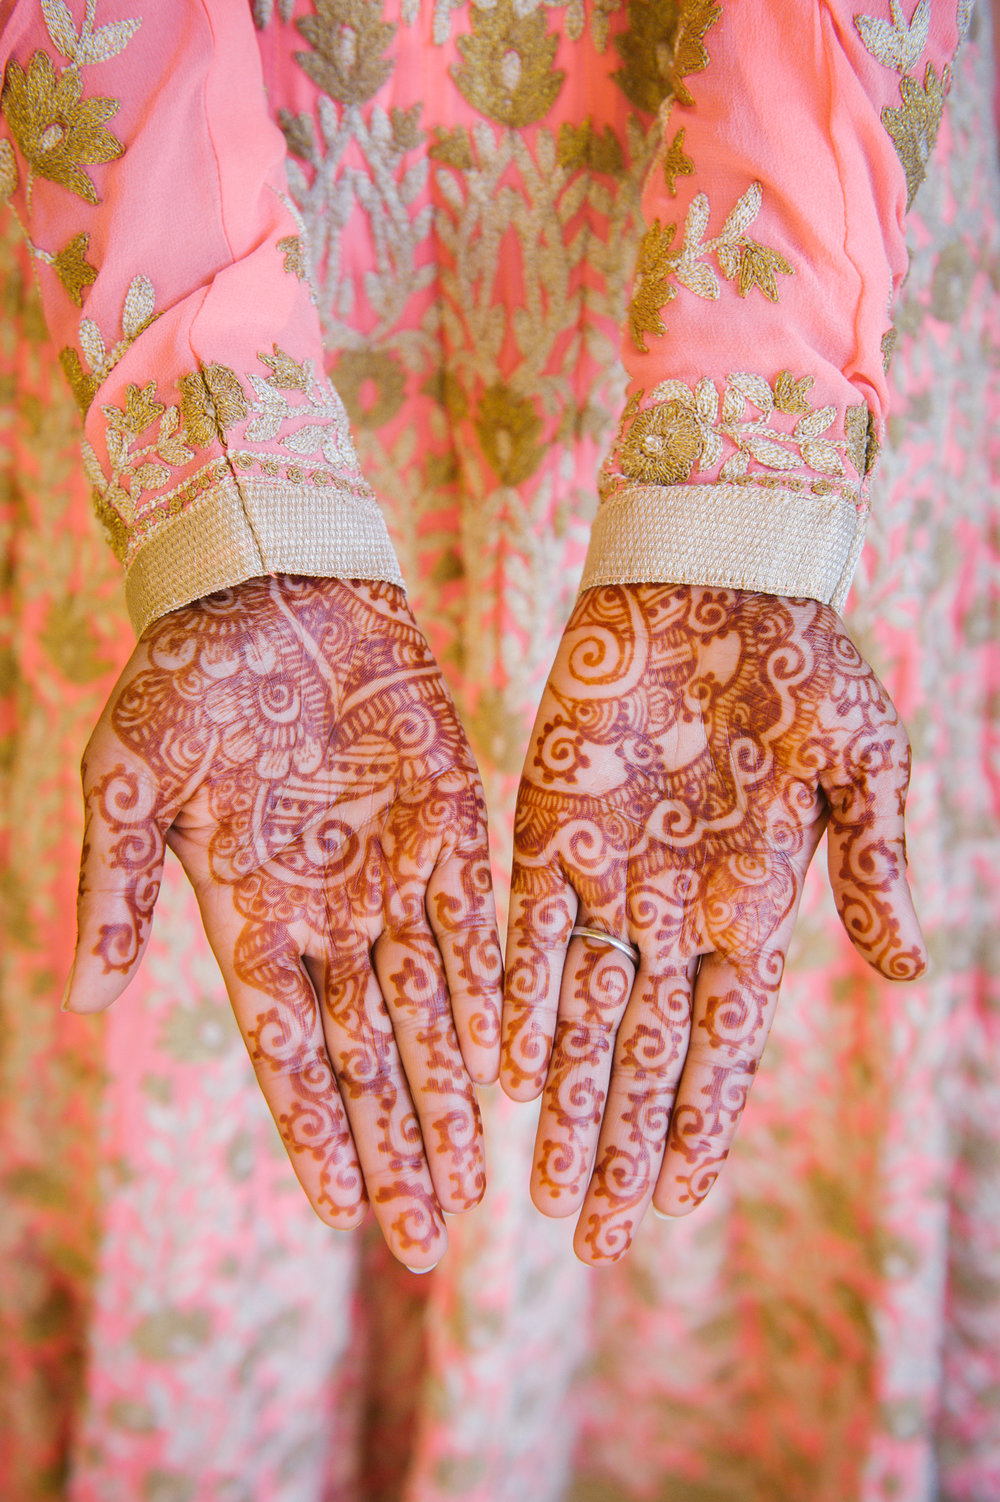 JKP_Indian_Weddings_0026.JPG